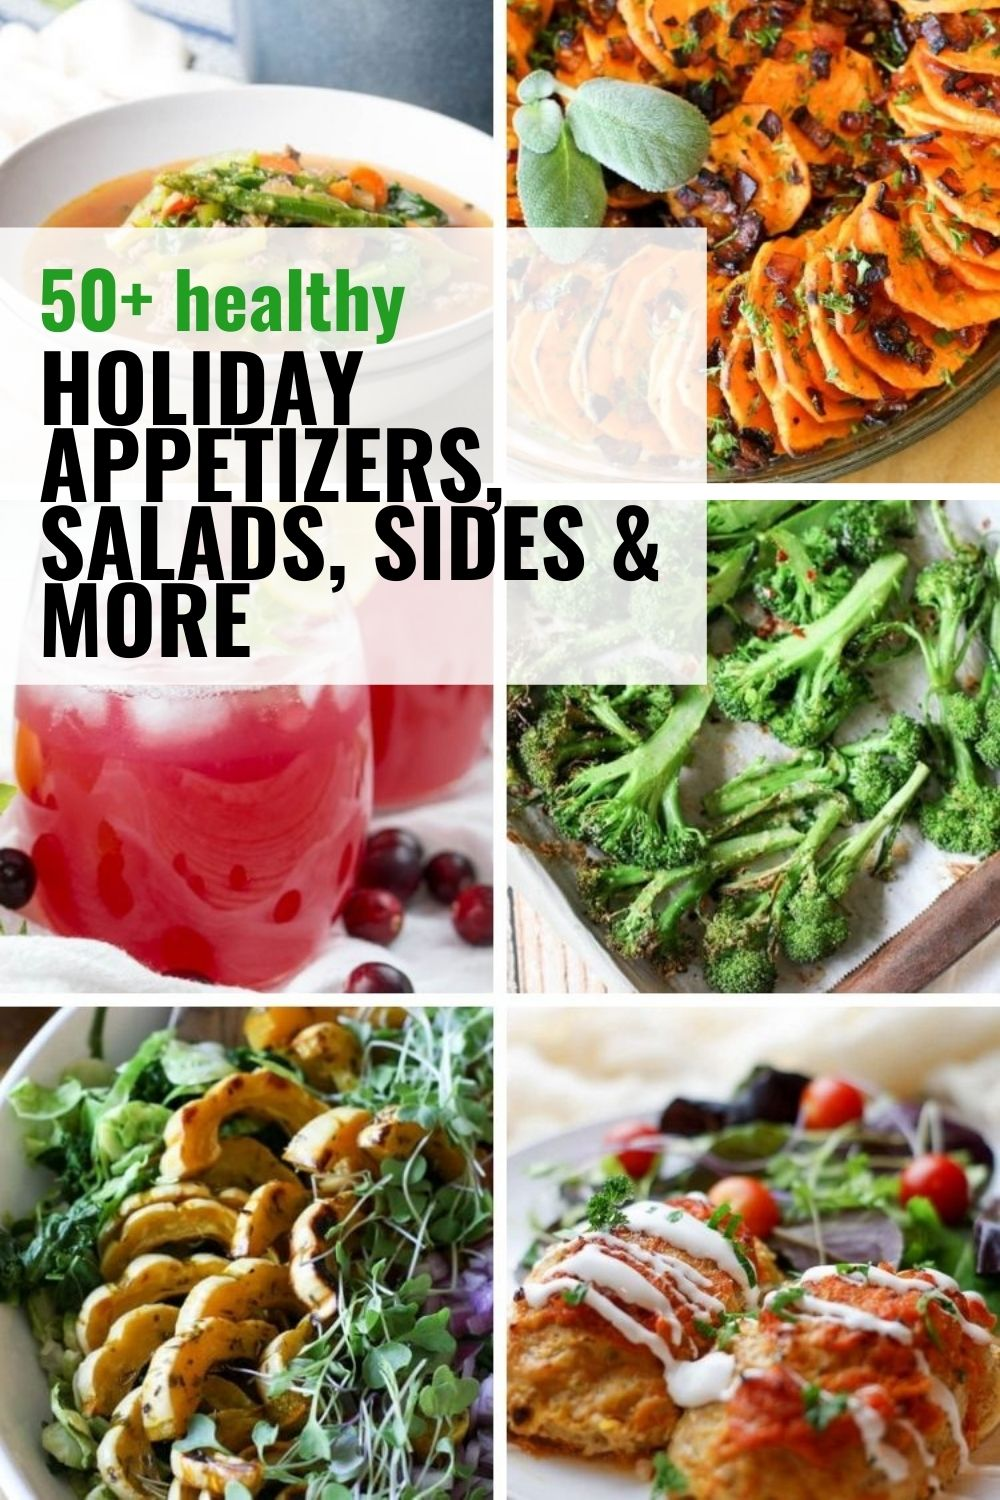 Healthy holiday recipes collage with appetizers, sides, salads and other healthy recipes